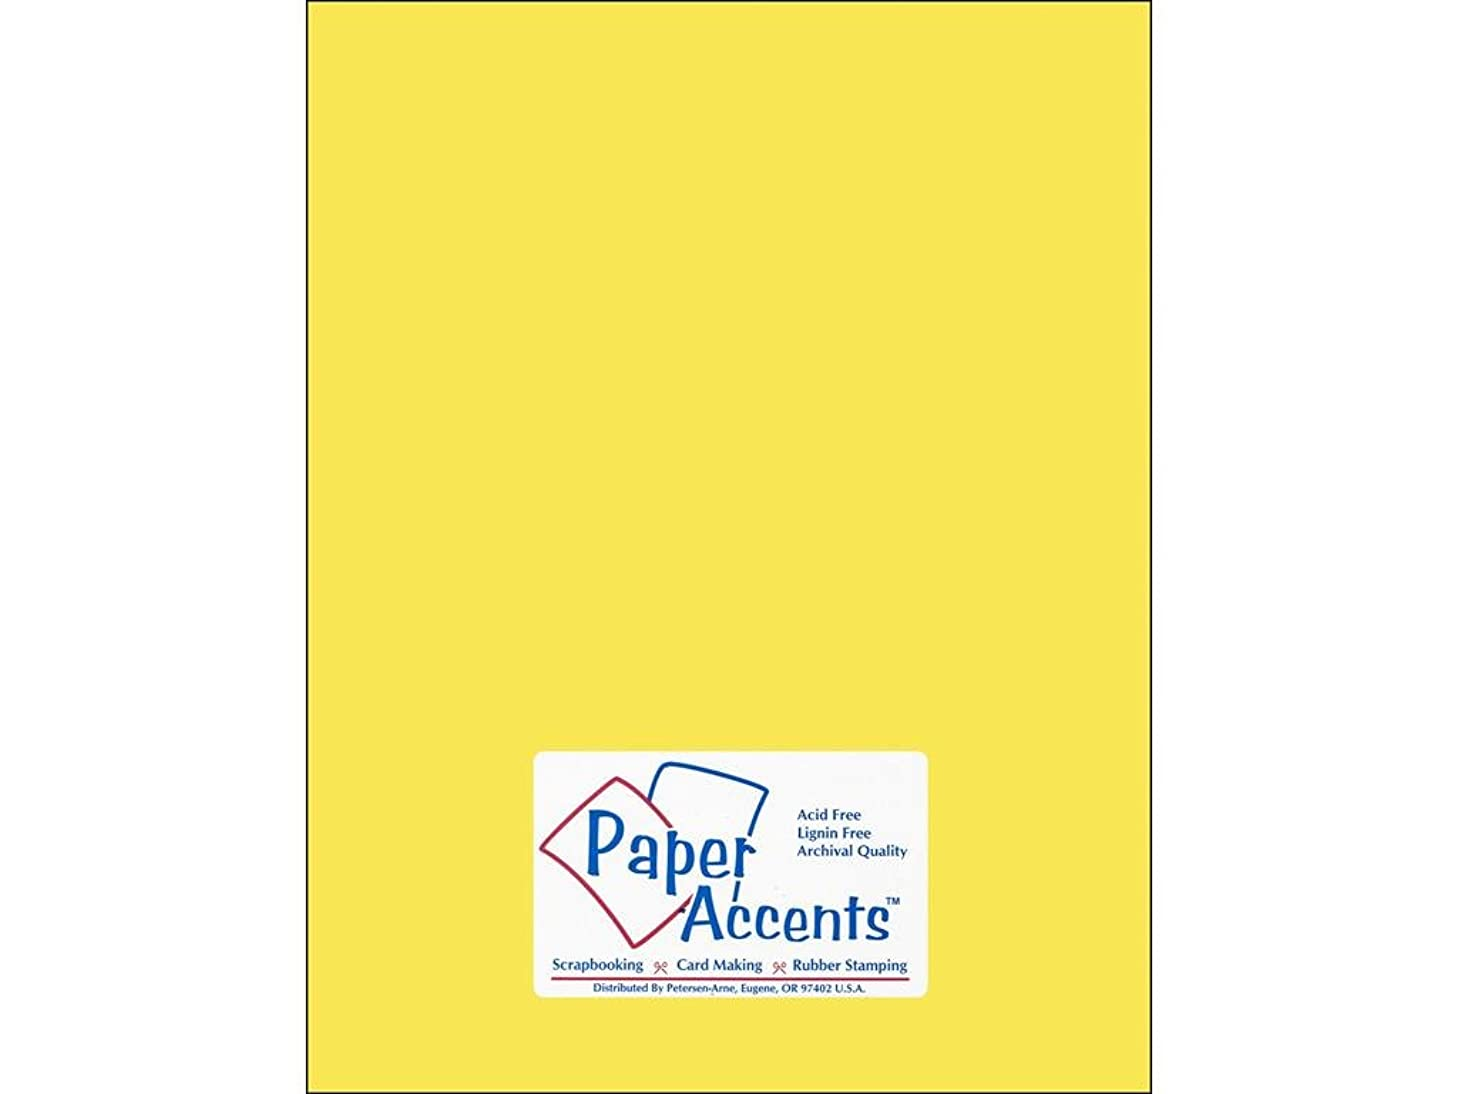 Accent Design Paper Accents Cdstk Smooth 8.5x11 60# Light Yellow